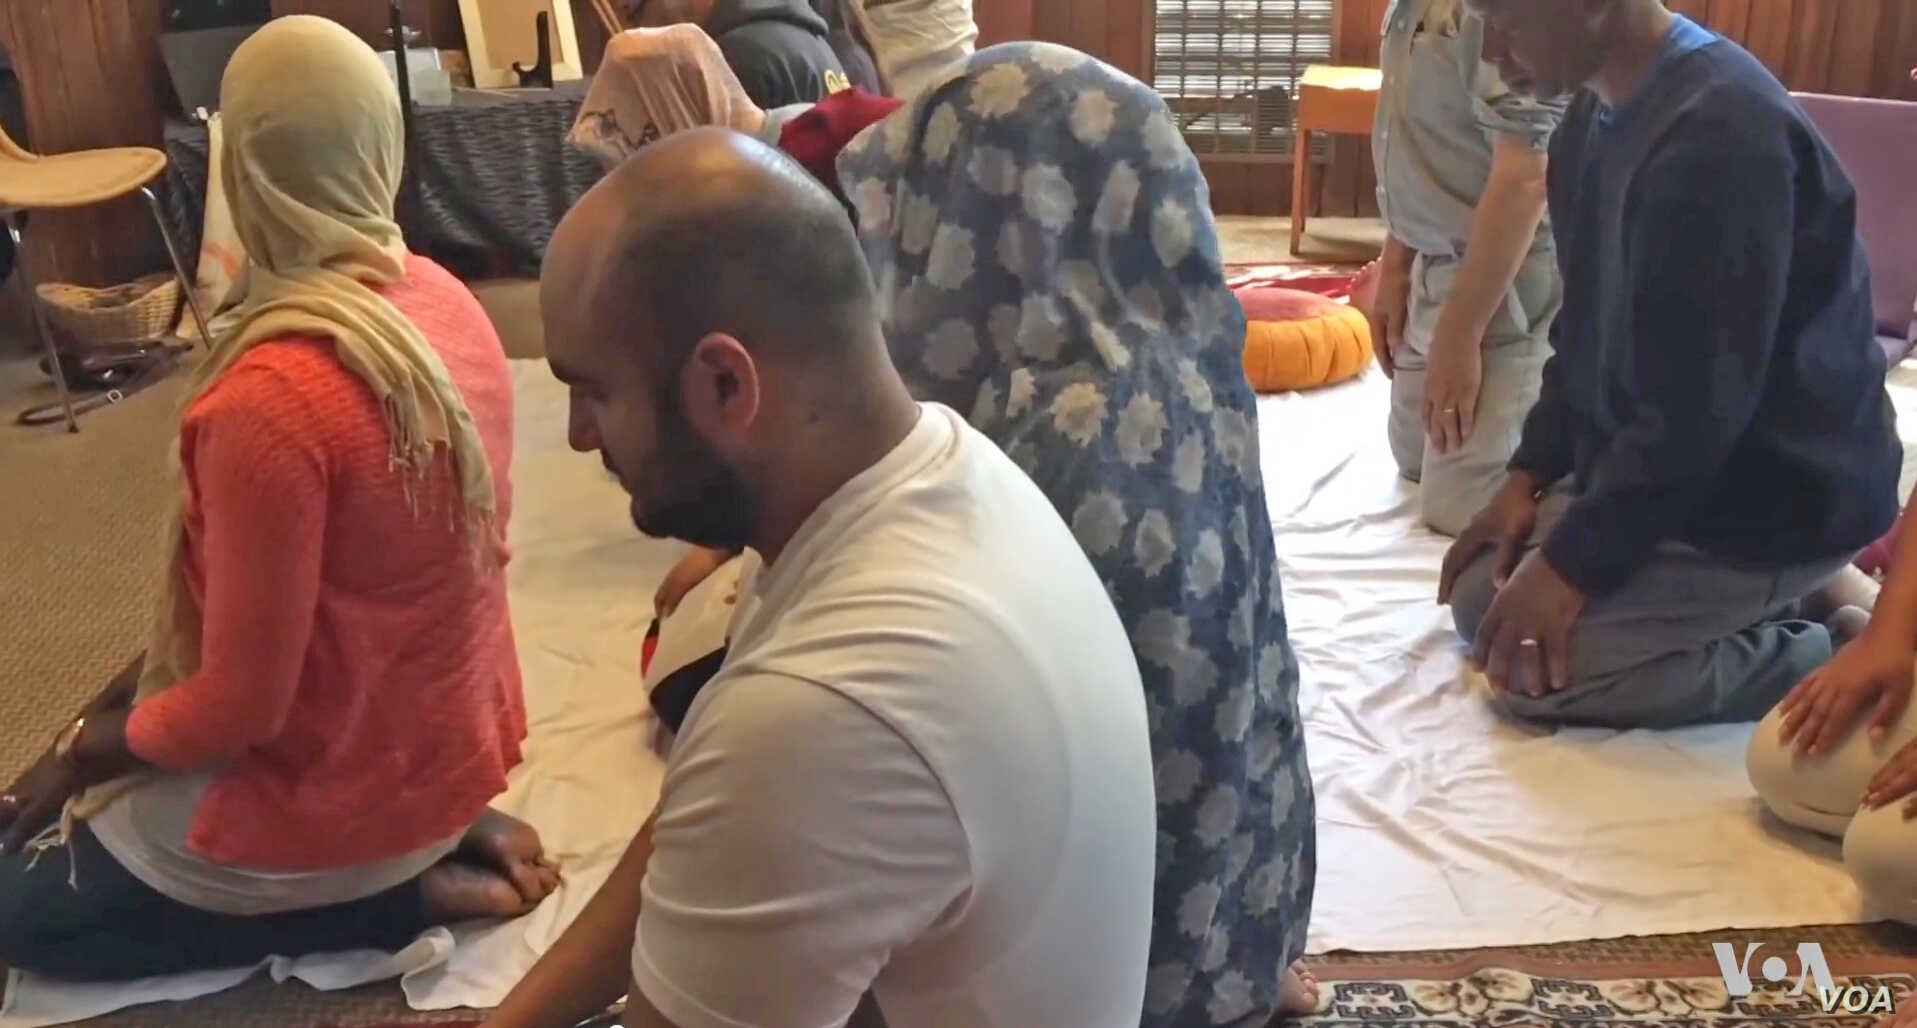 Men and Women Pray Together at Unconventional Mosque | Voice of